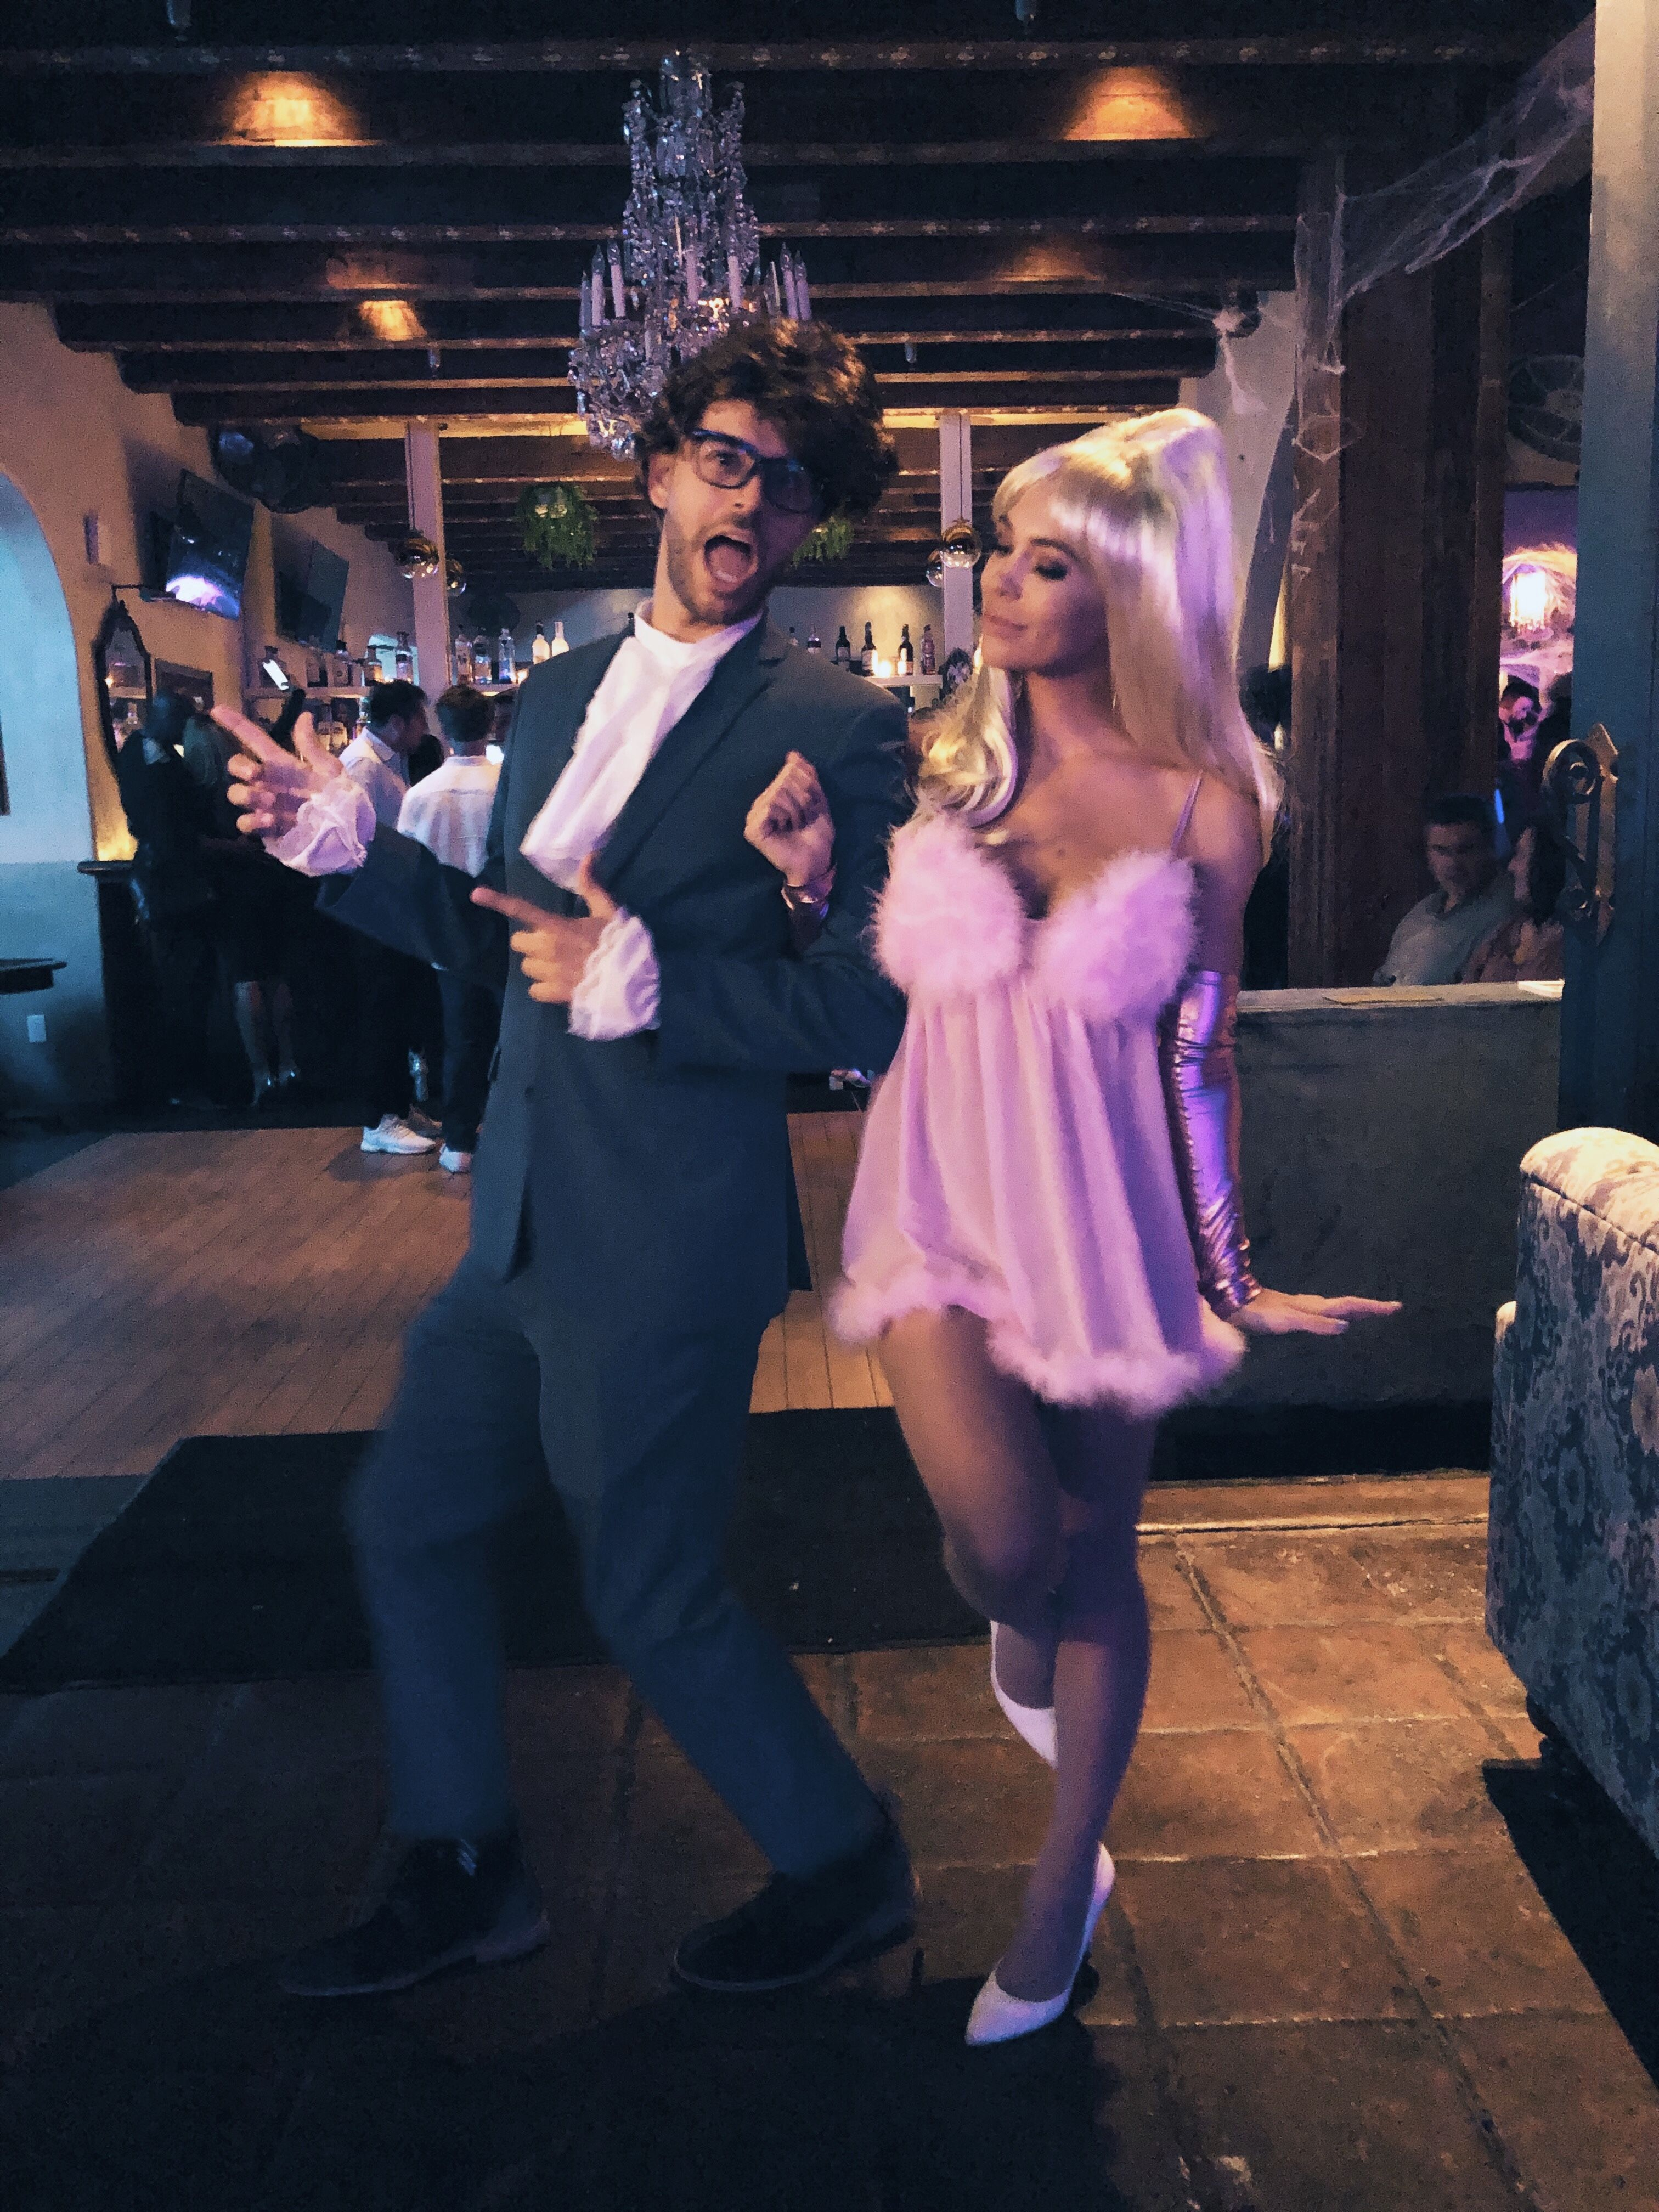 Austin Halloween 2020 Austin Powers costume & fembot costume // Halloween couples